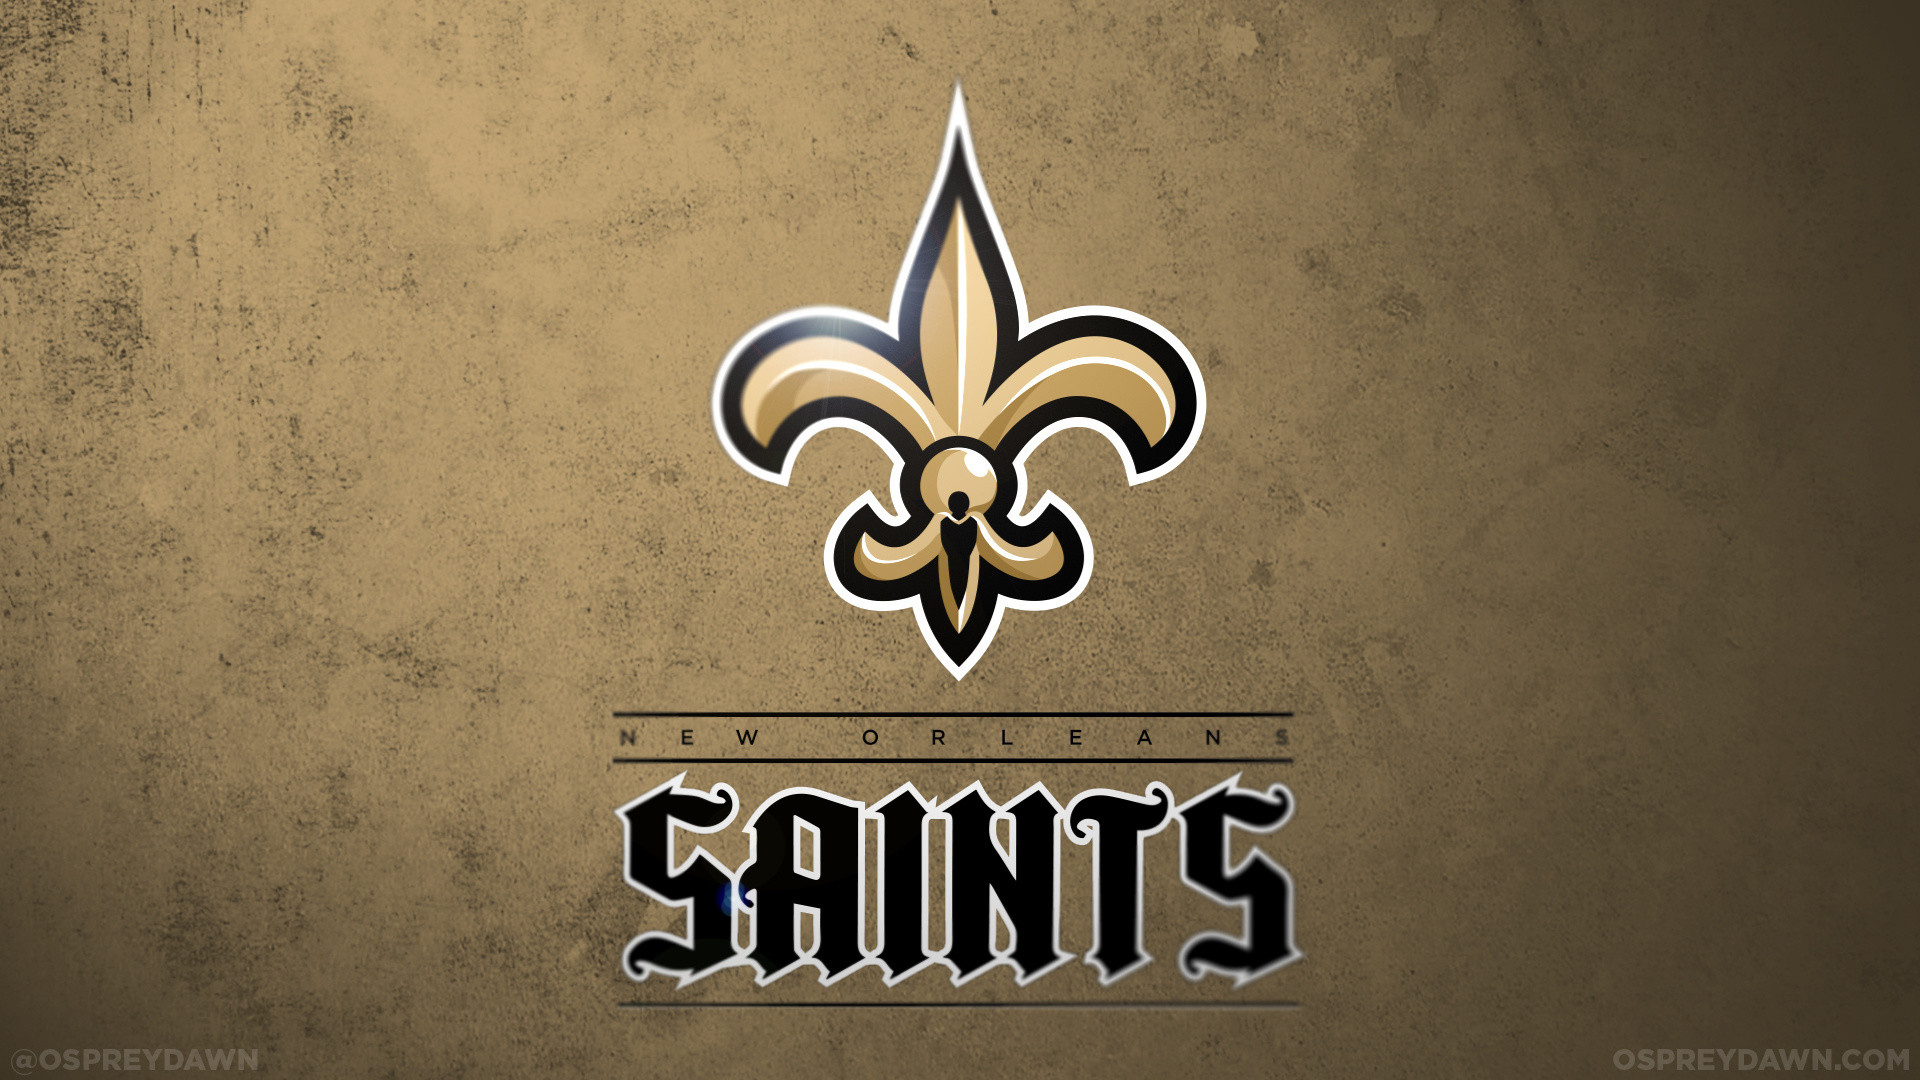 New Orleans Saints Desktop Wallpaper Wallpapertag